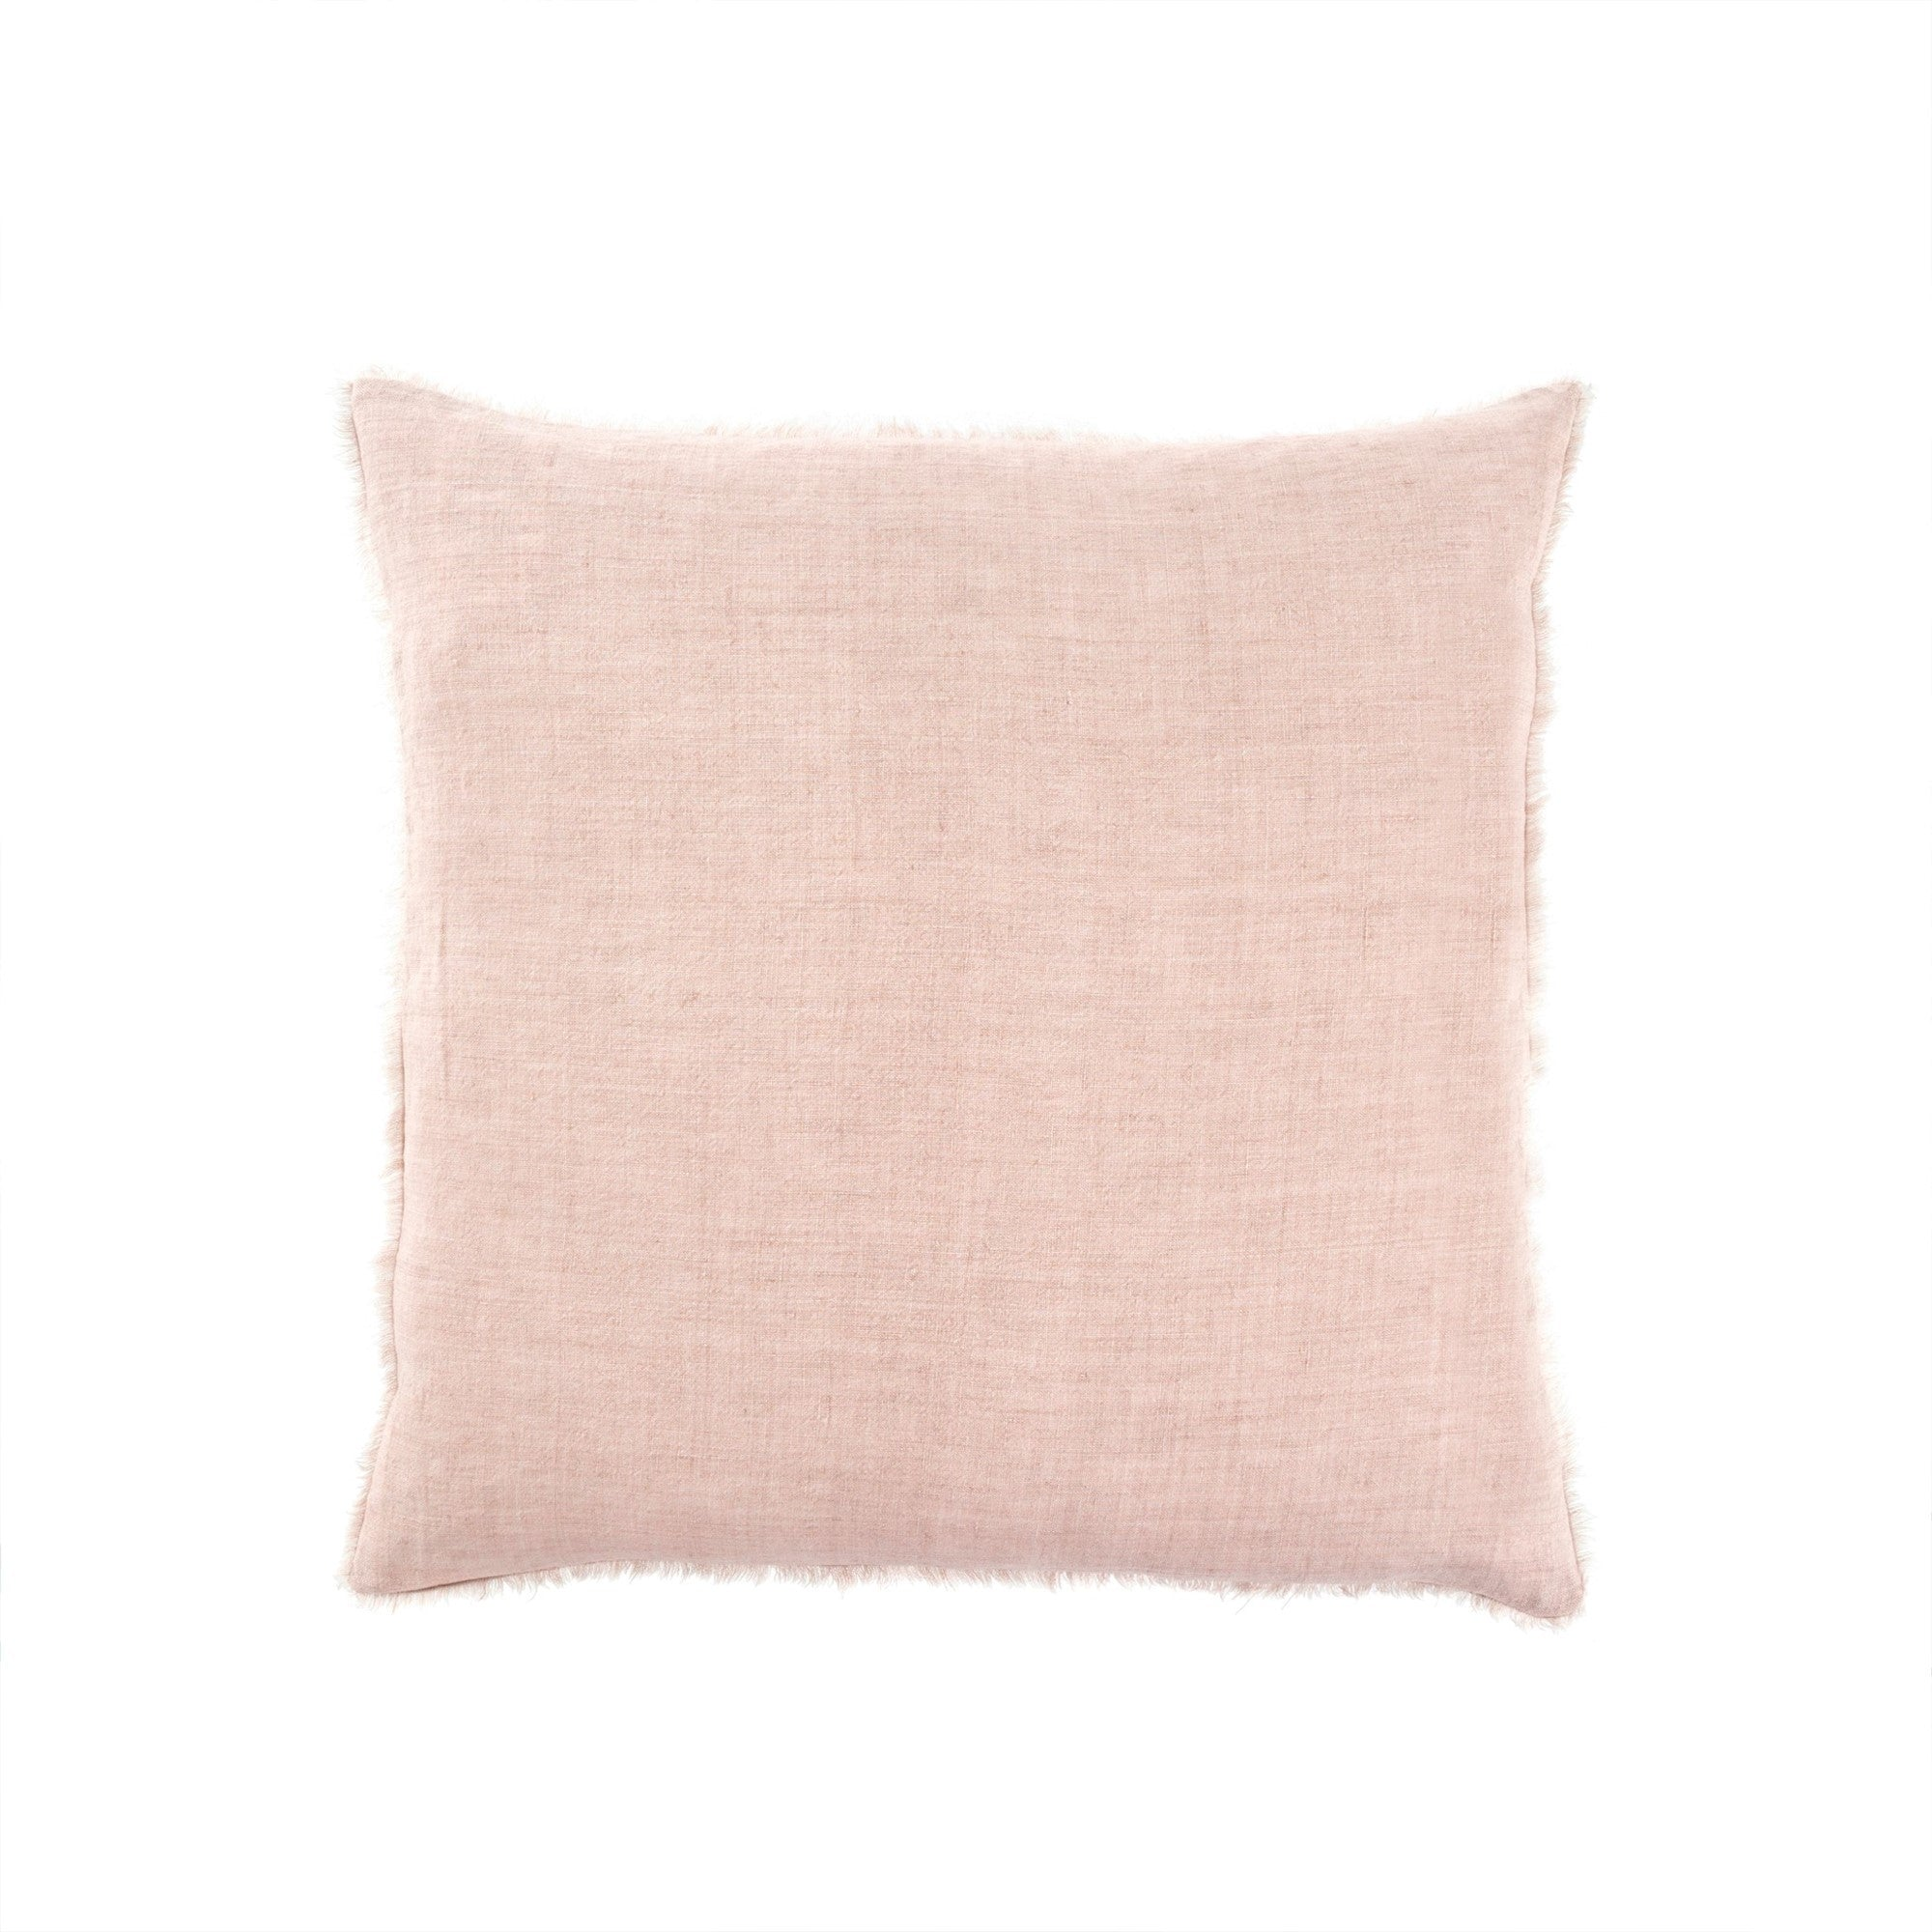 Lina Linen Pillow - Dusty Rose | Putti Fine Furnishings